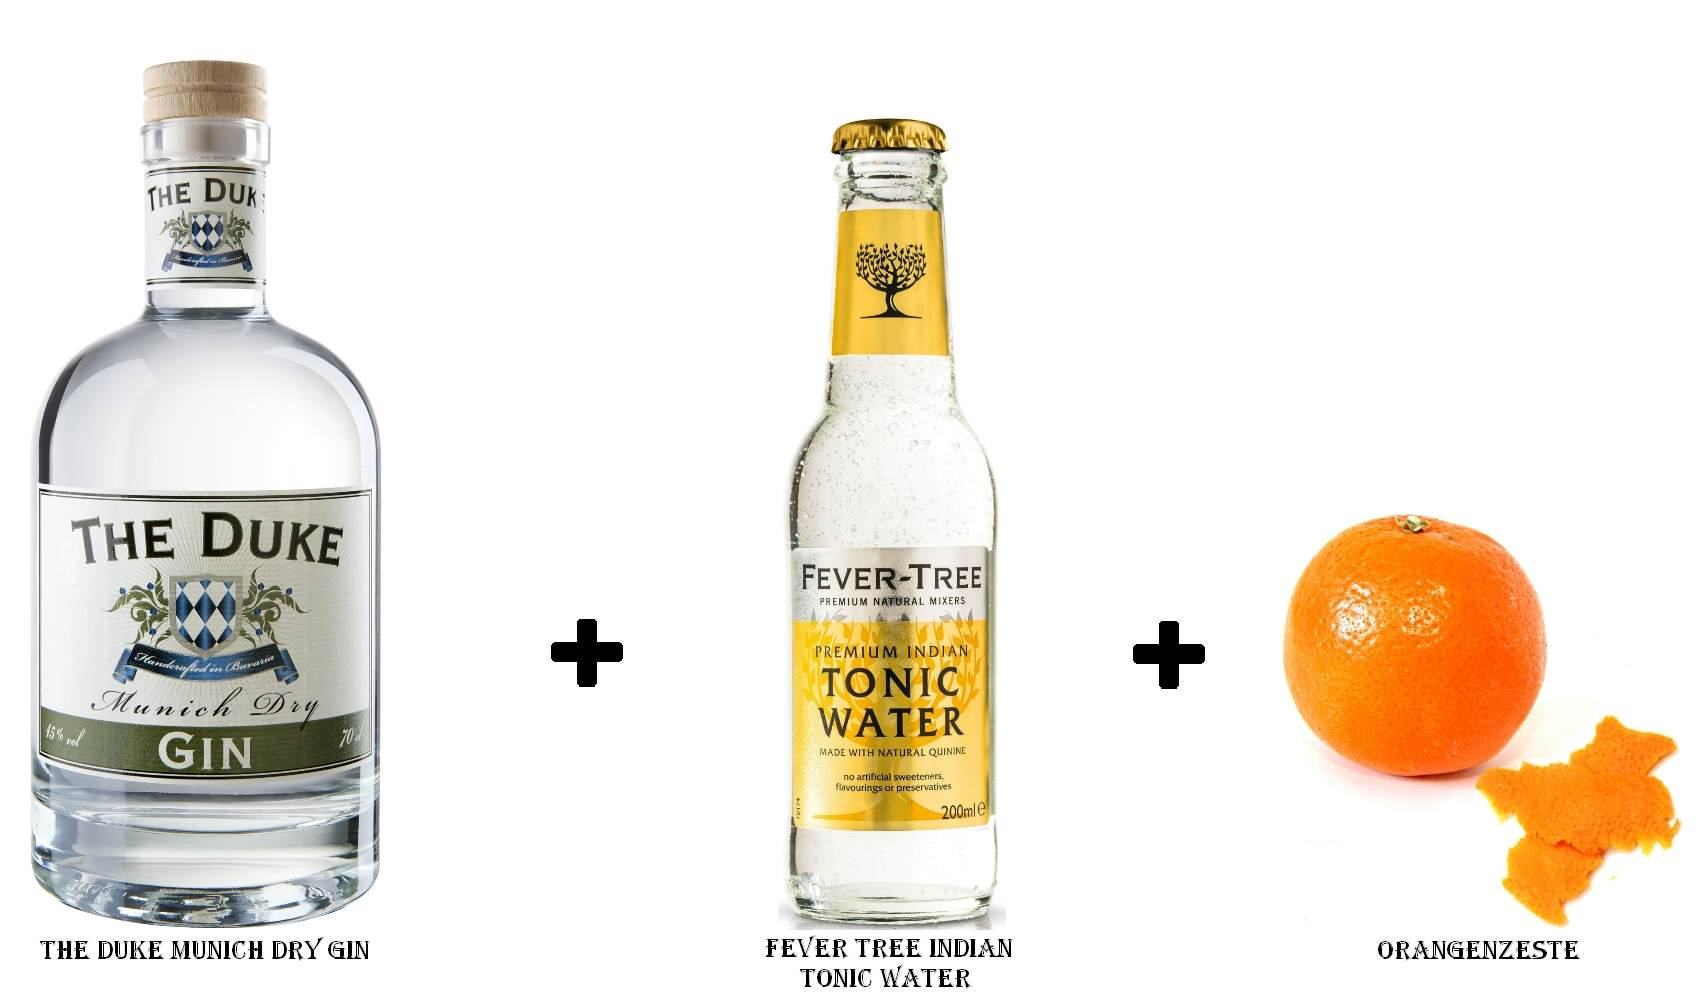 The Duke Munich Dry Gin + Fever Tree Indian Tonic Water + Orangenzeste